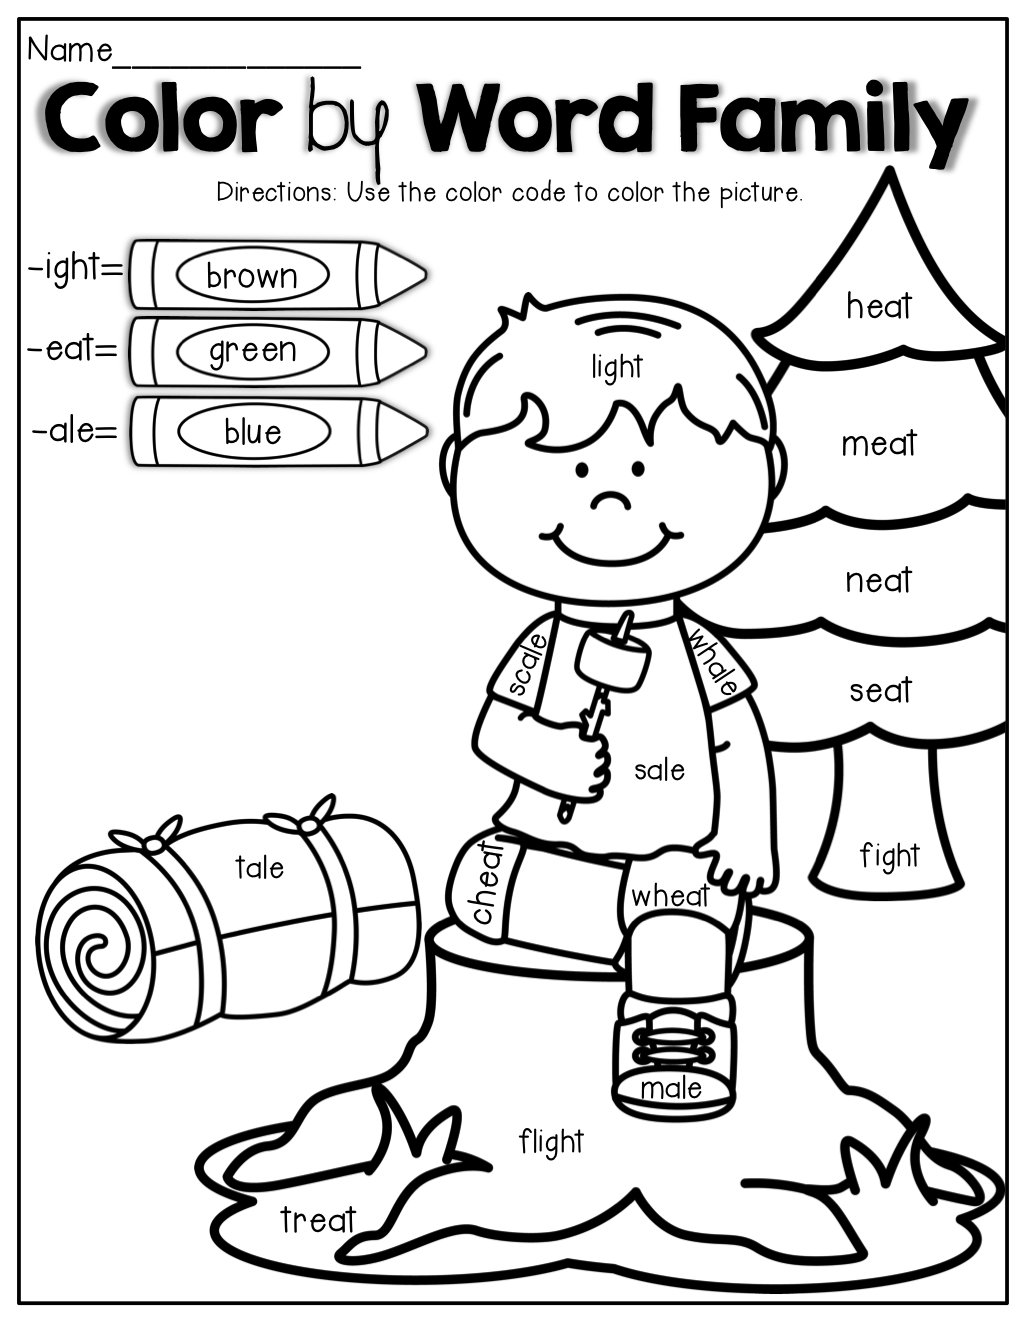 Color by Word Family KinderLand Collaborative – Word Family Worksheets Kindergarten